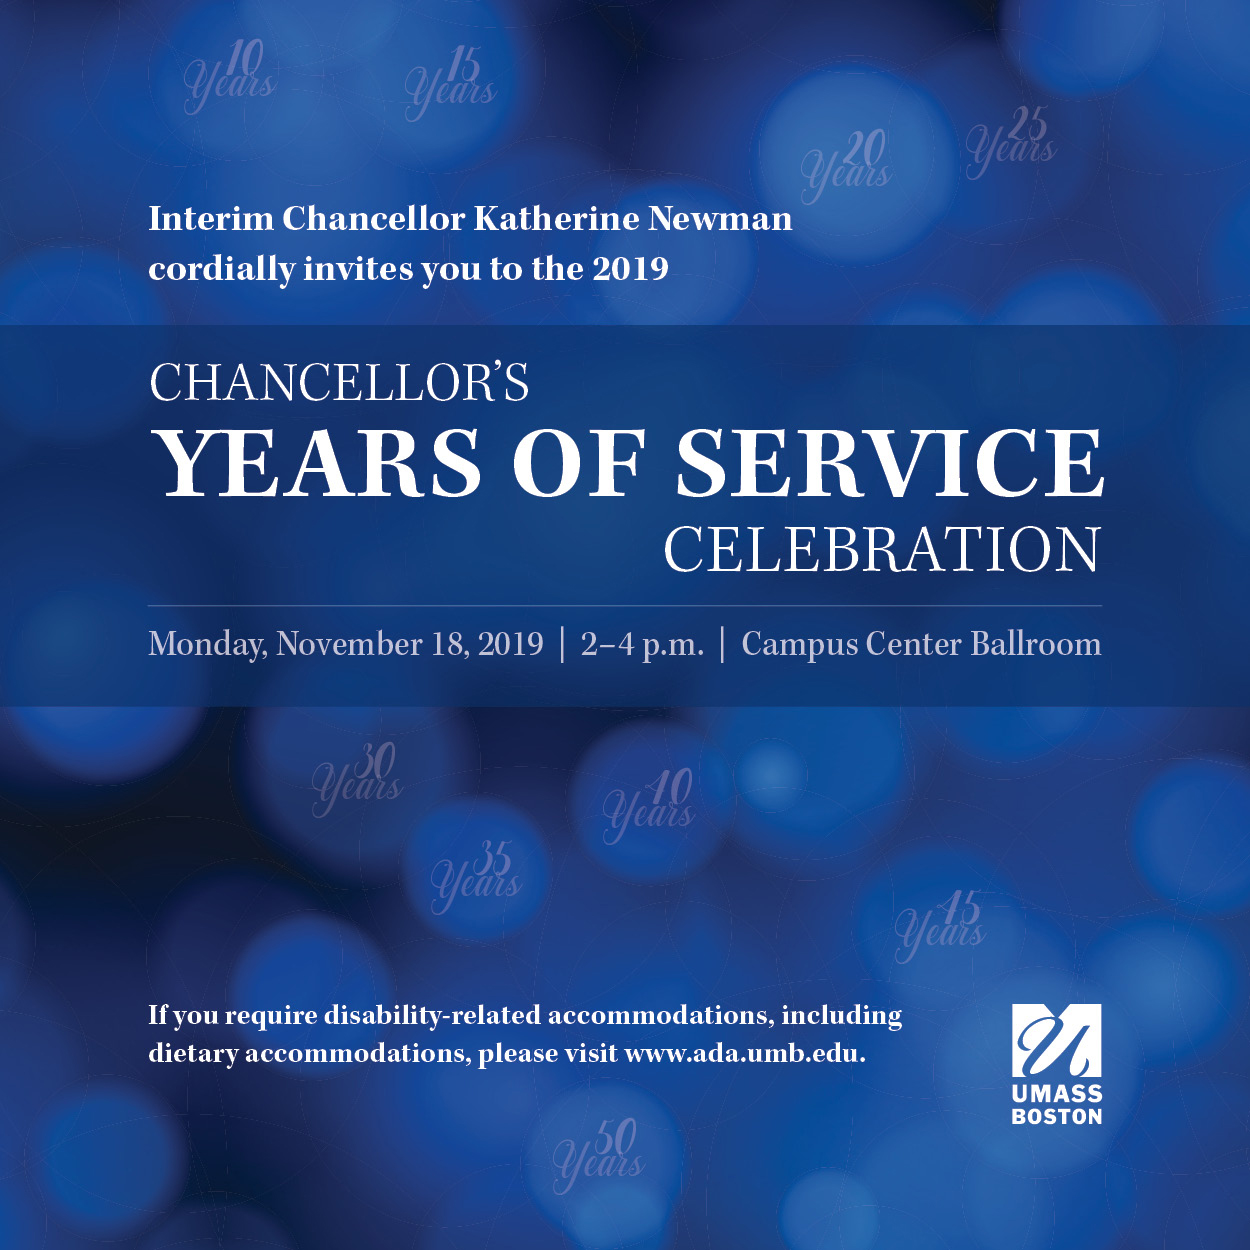 Chancellor's Years of Service November 18, 2019 at 2PM - 4PM